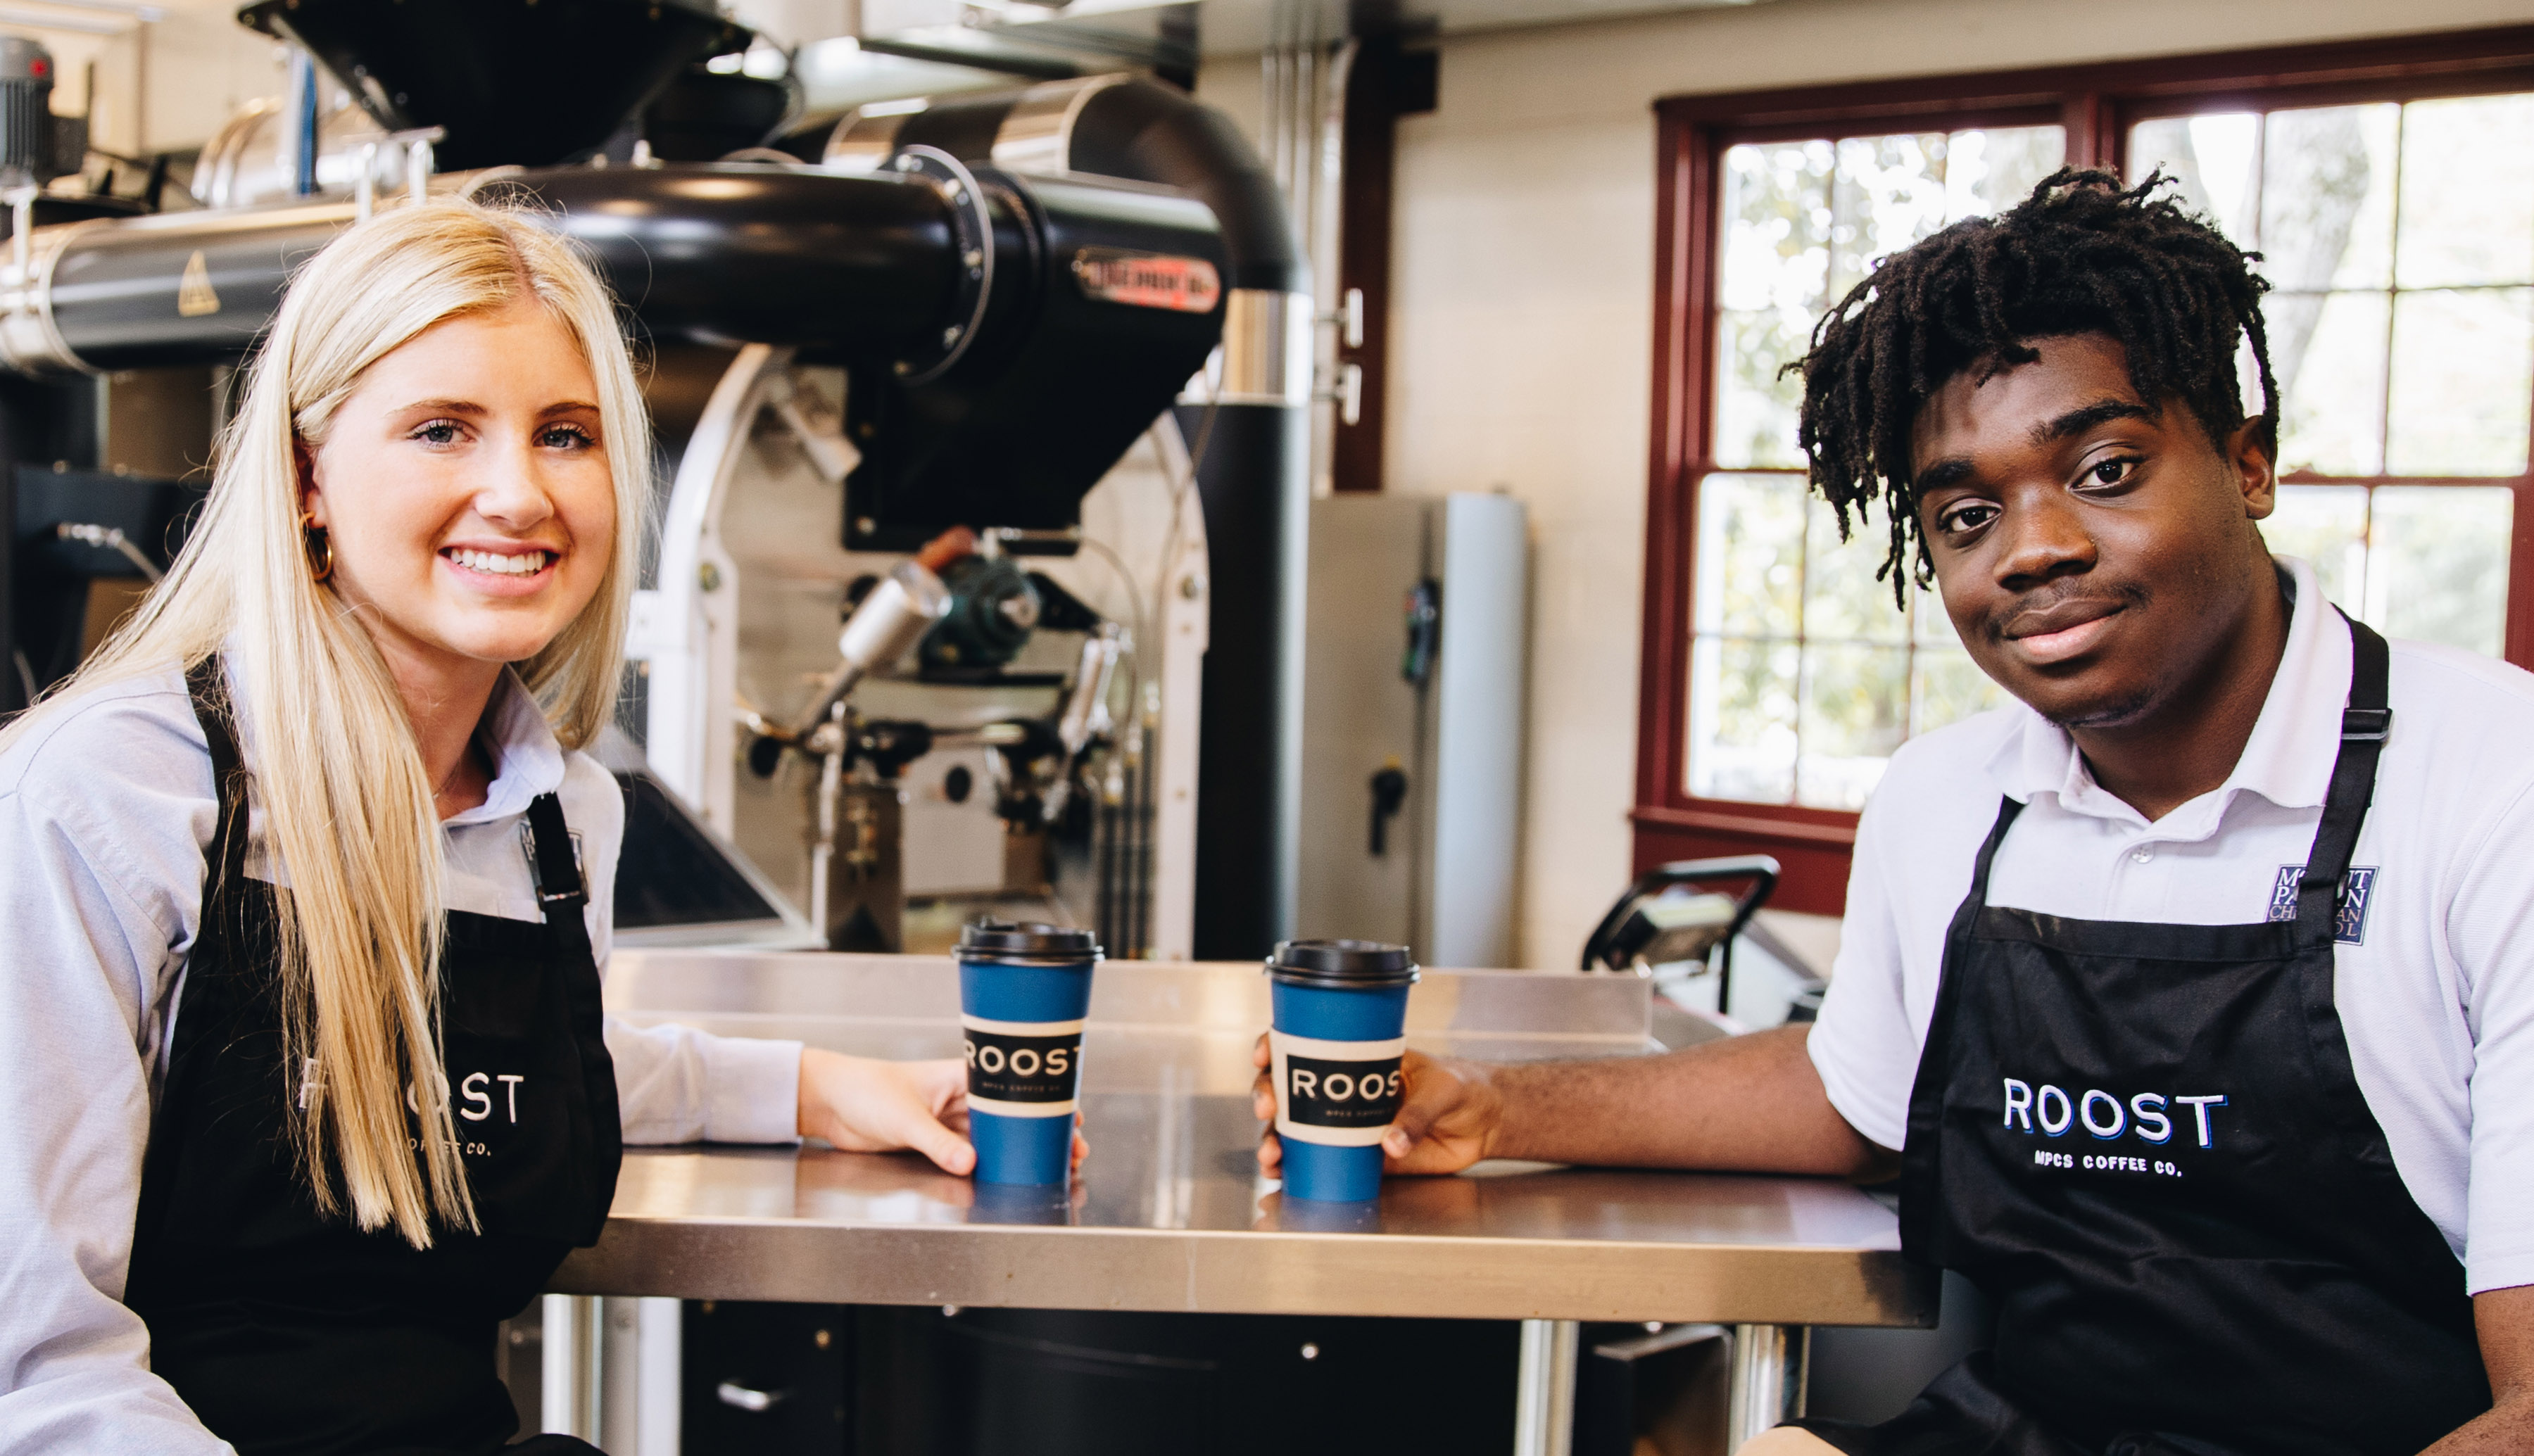 Innovation in Education: A New Class of Coffee